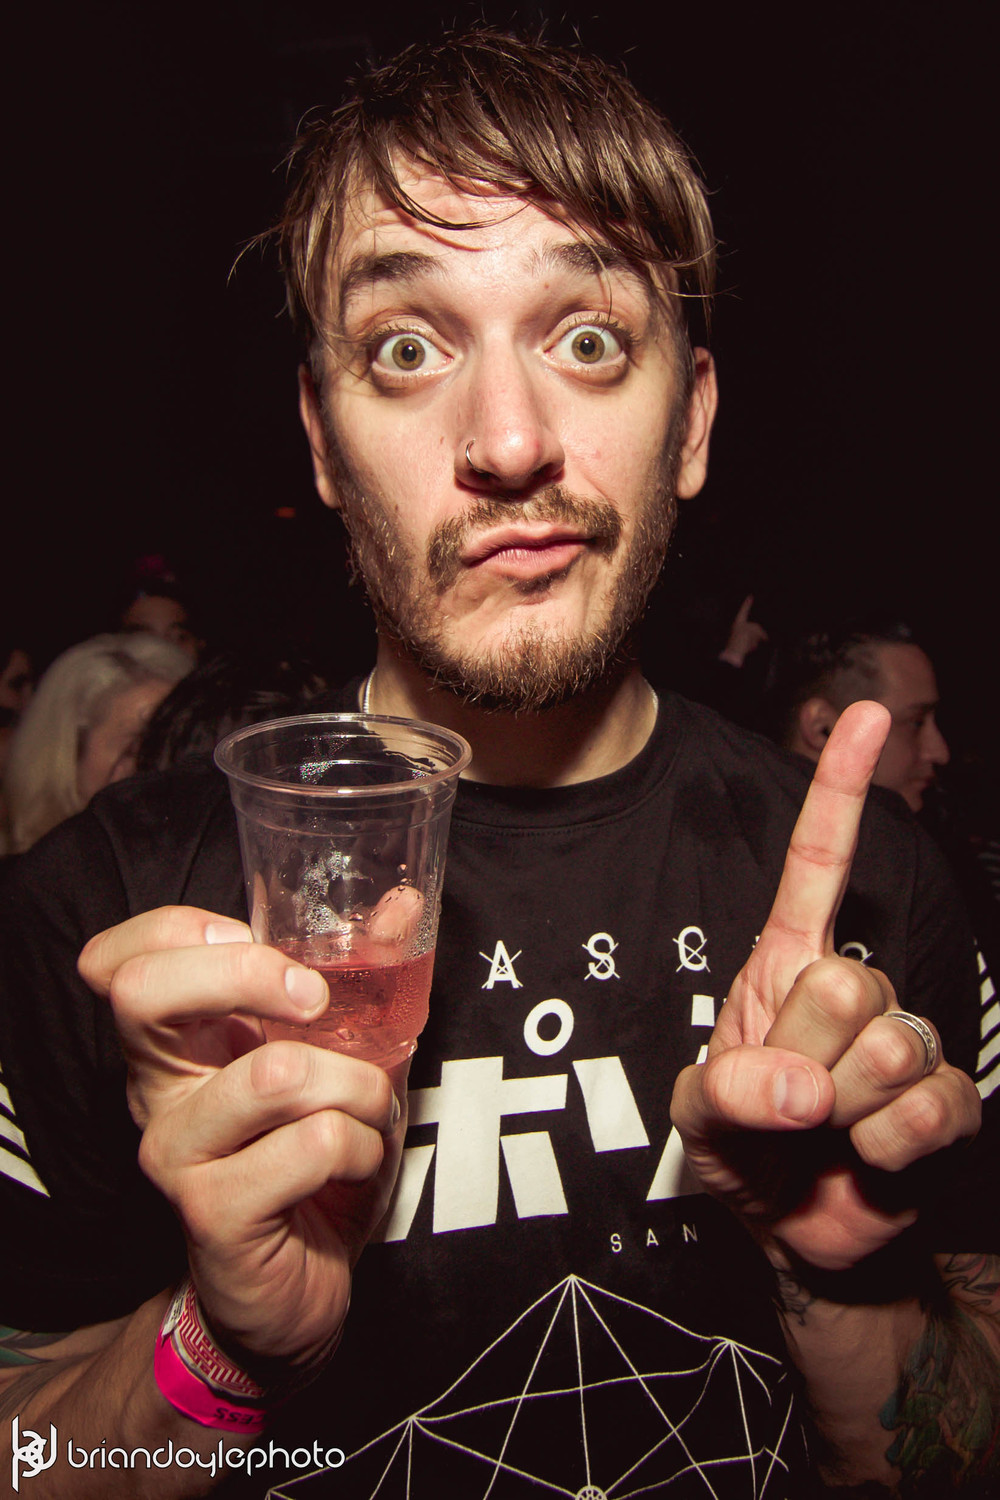 Bro Safari - Black Out Tour @ Avalon bdp 26.09.14-67.jpg